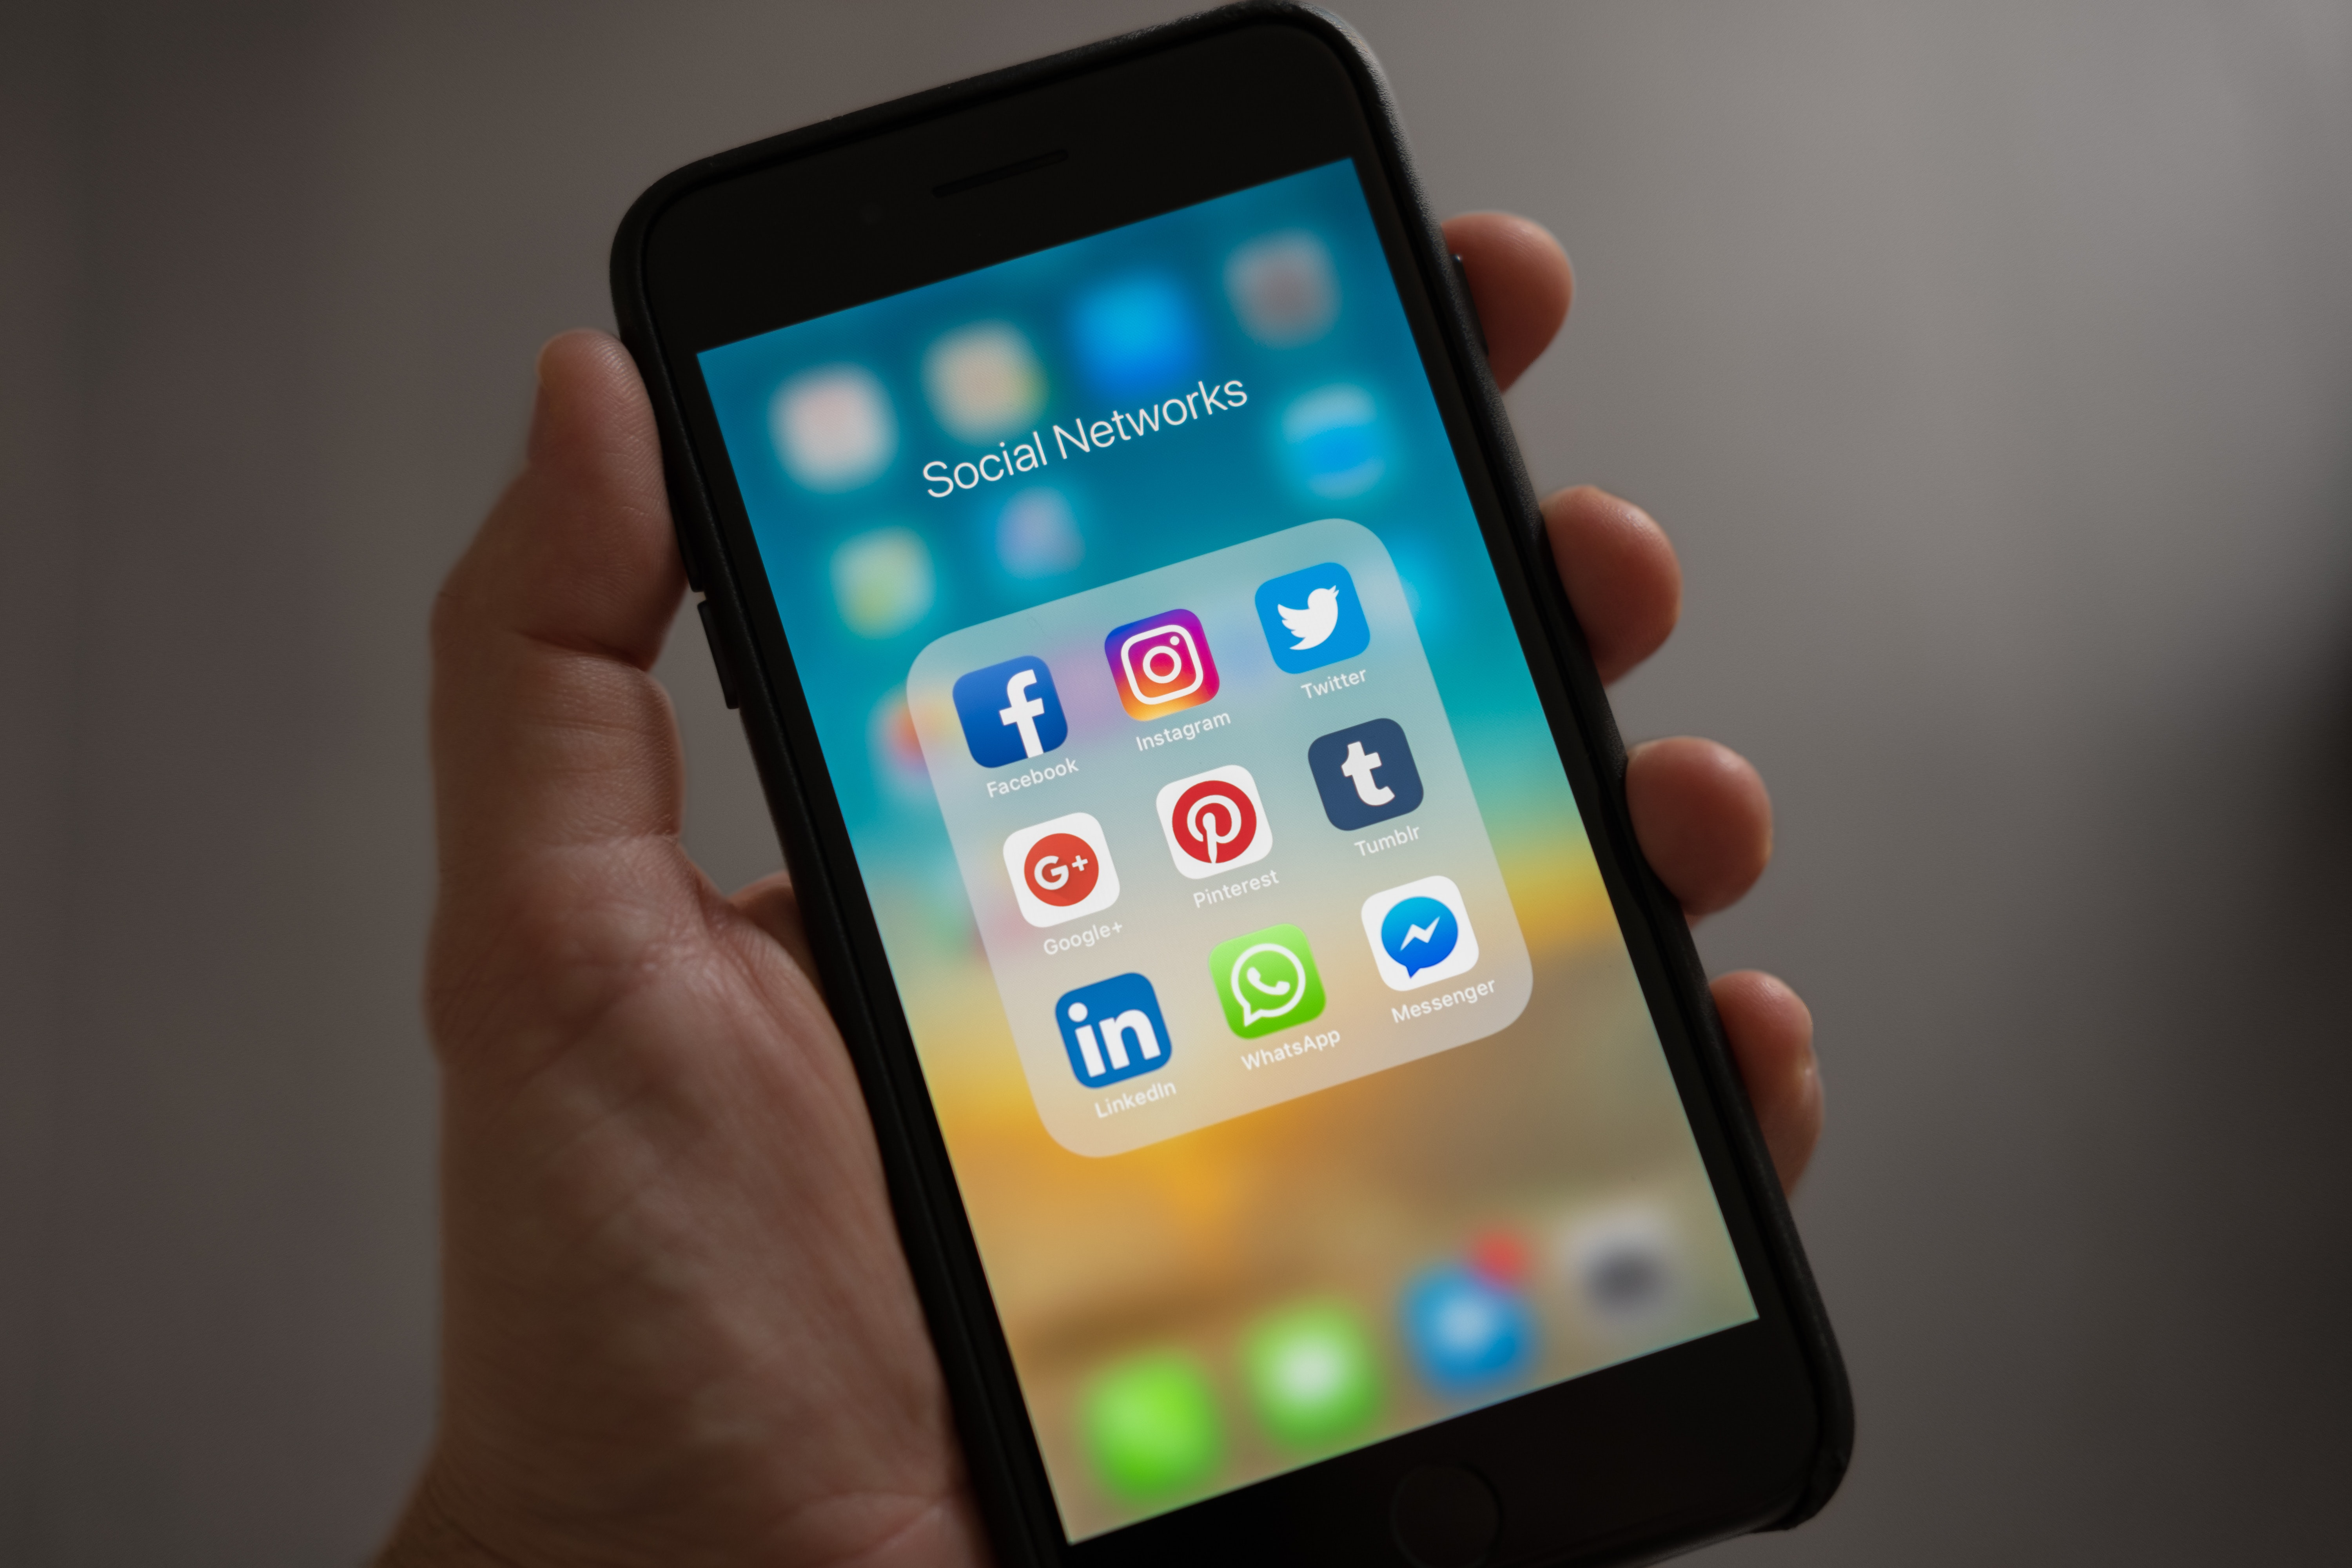 A phone screen showing a selection of social media icons